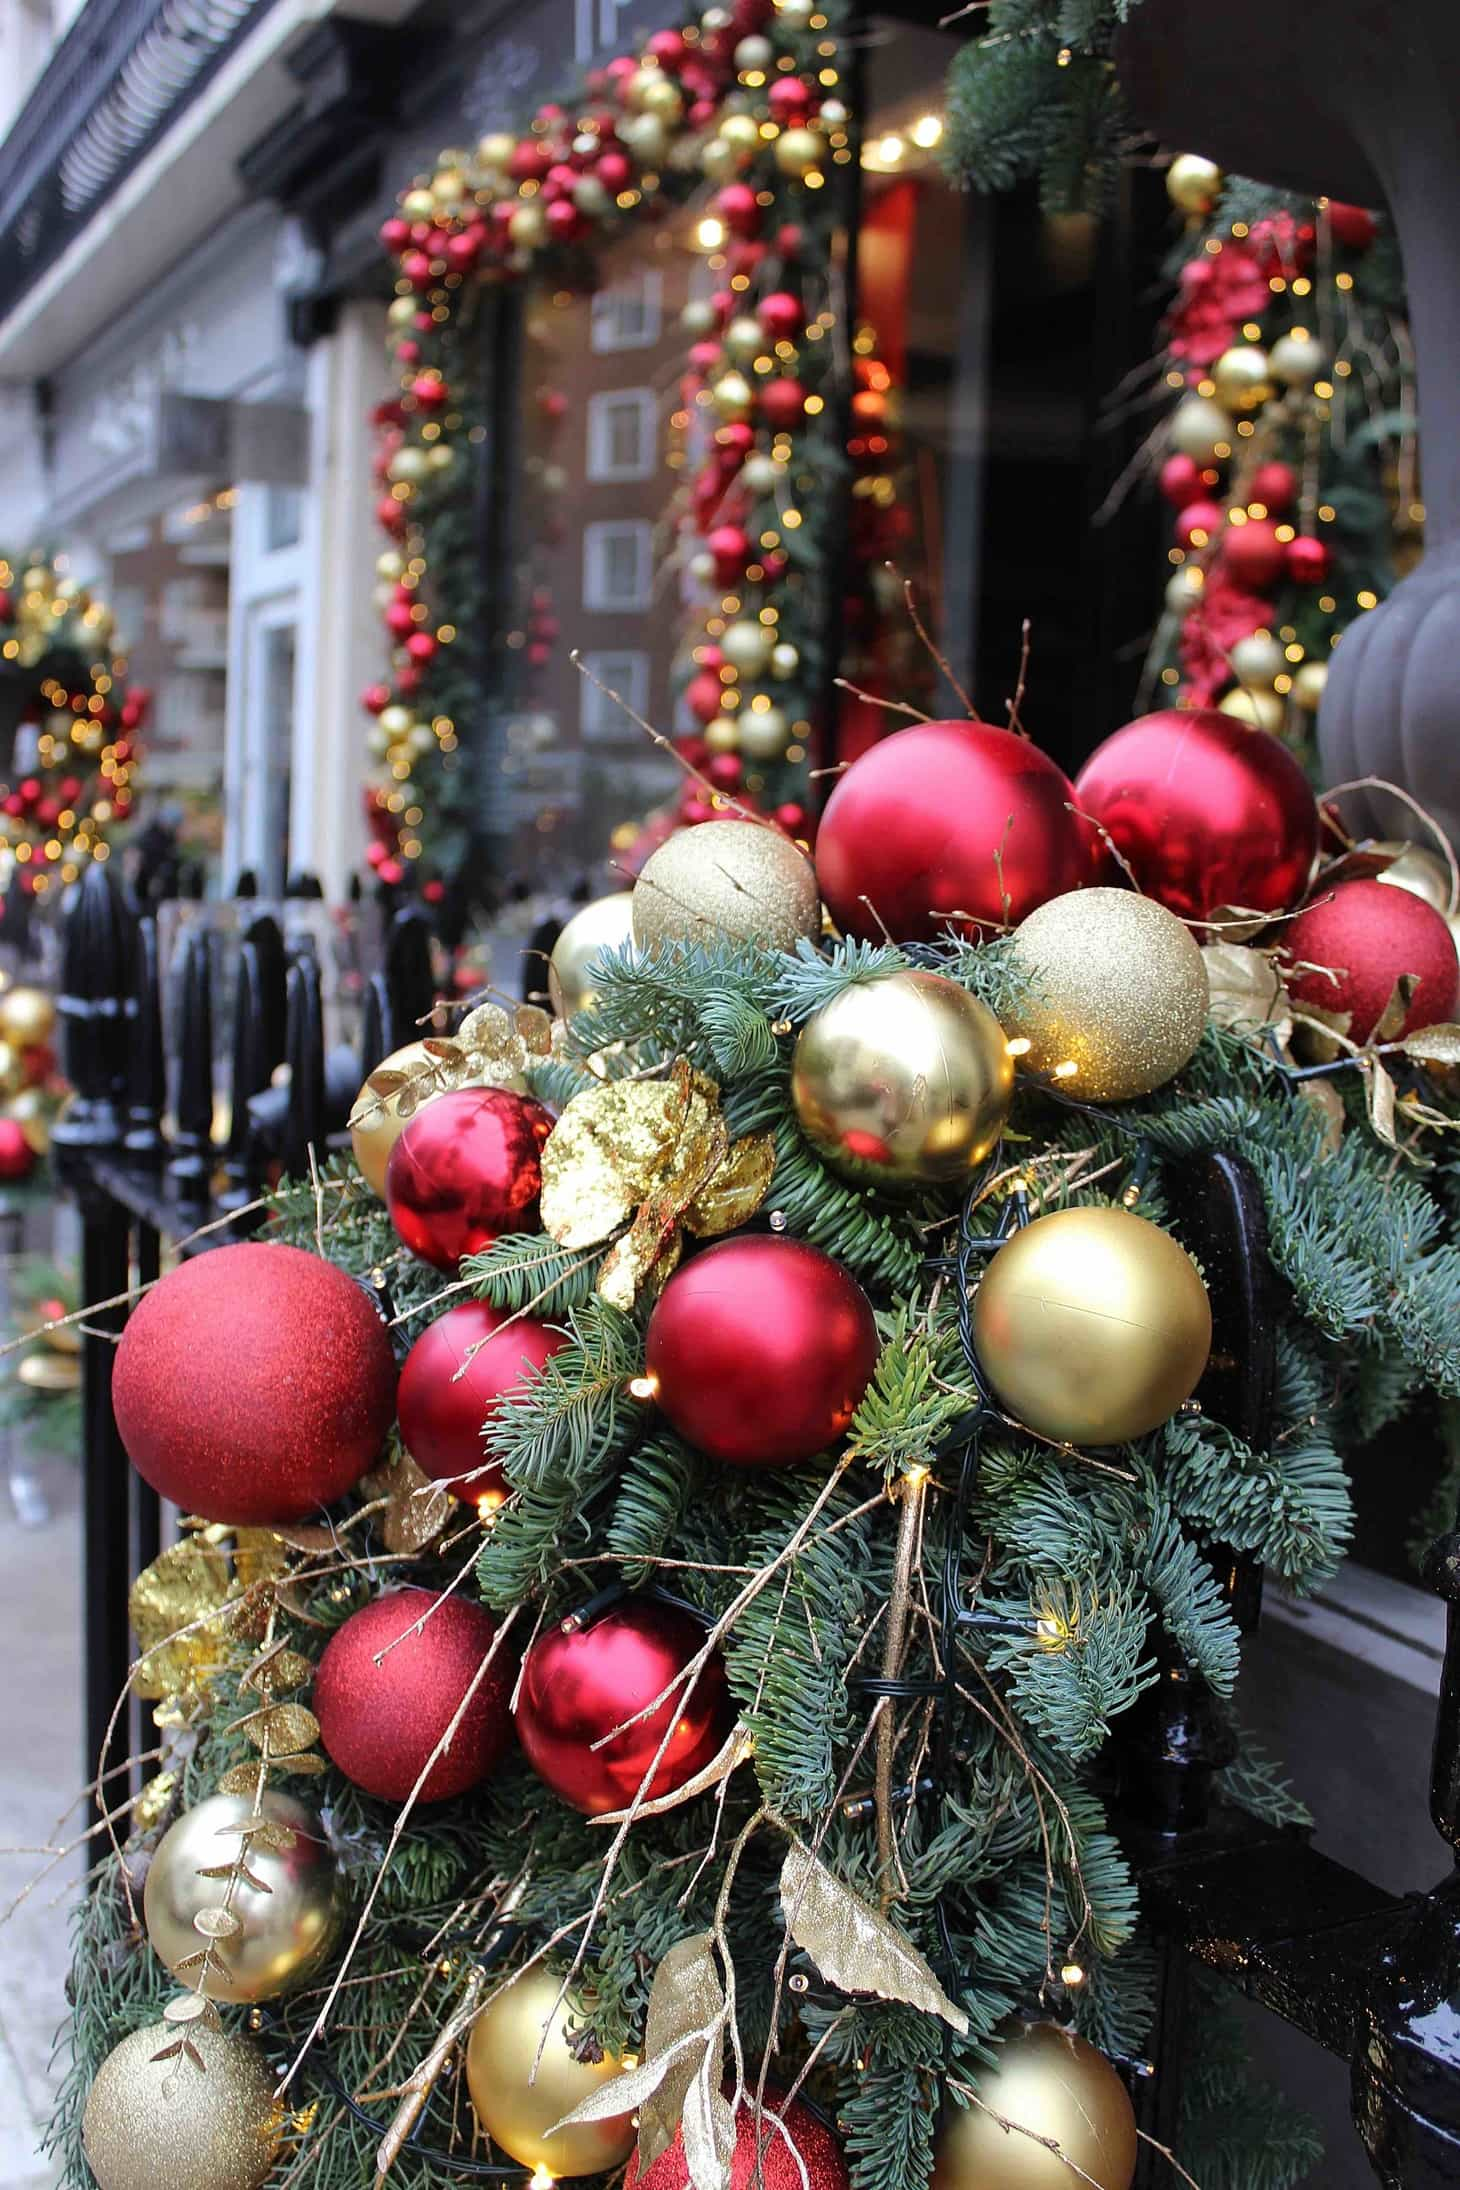 Neill Strain, Christmas, 2015, flowers, florists, famous london florists,  decorations,  gold and red, Christmas installation